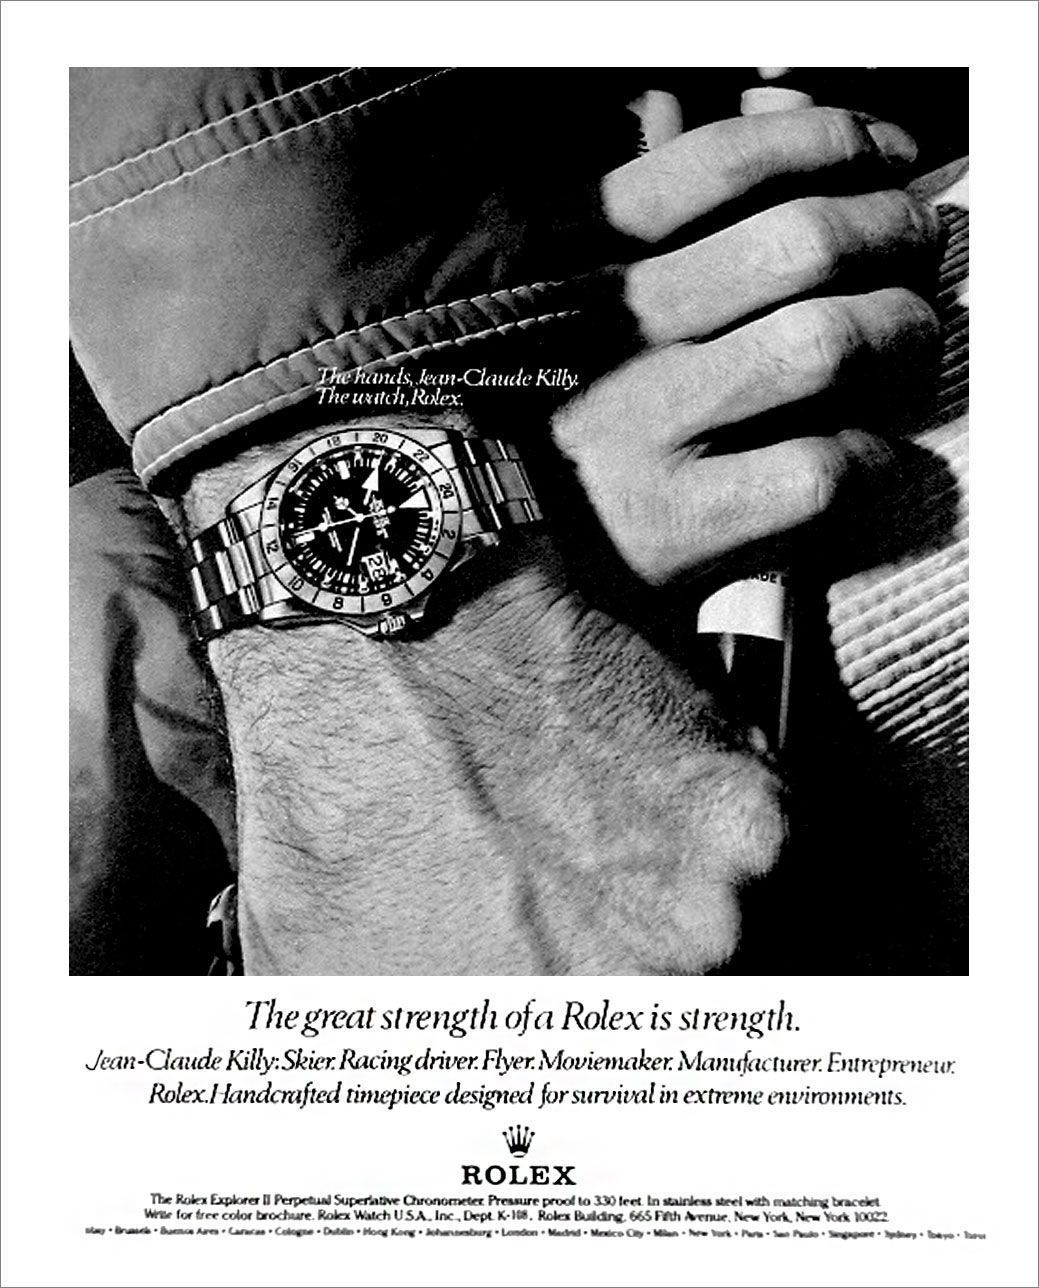 Jean Claude Killy. Rolex Explorer II Orange #rolexexplorerii Jean Claude Killy. Rolex Explorer II Orange #rolexexplorer Jean Claude Killy. Rolex Explorer II Orange #rolexexplorerii Jean Claude Killy. Rolex Explorer II Orange #rolexexplorerii Jean Claude Killy. Rolex Explorer II Orange #rolexexplorerii Jean Claude Killy. Rolex Explorer II Orange #rolexexplorer Jean Claude Killy. Rolex Explorer II Orange #rolexexplorerii Jean Claude Killy. Rolex Explorer II Orange #rolexexplorer